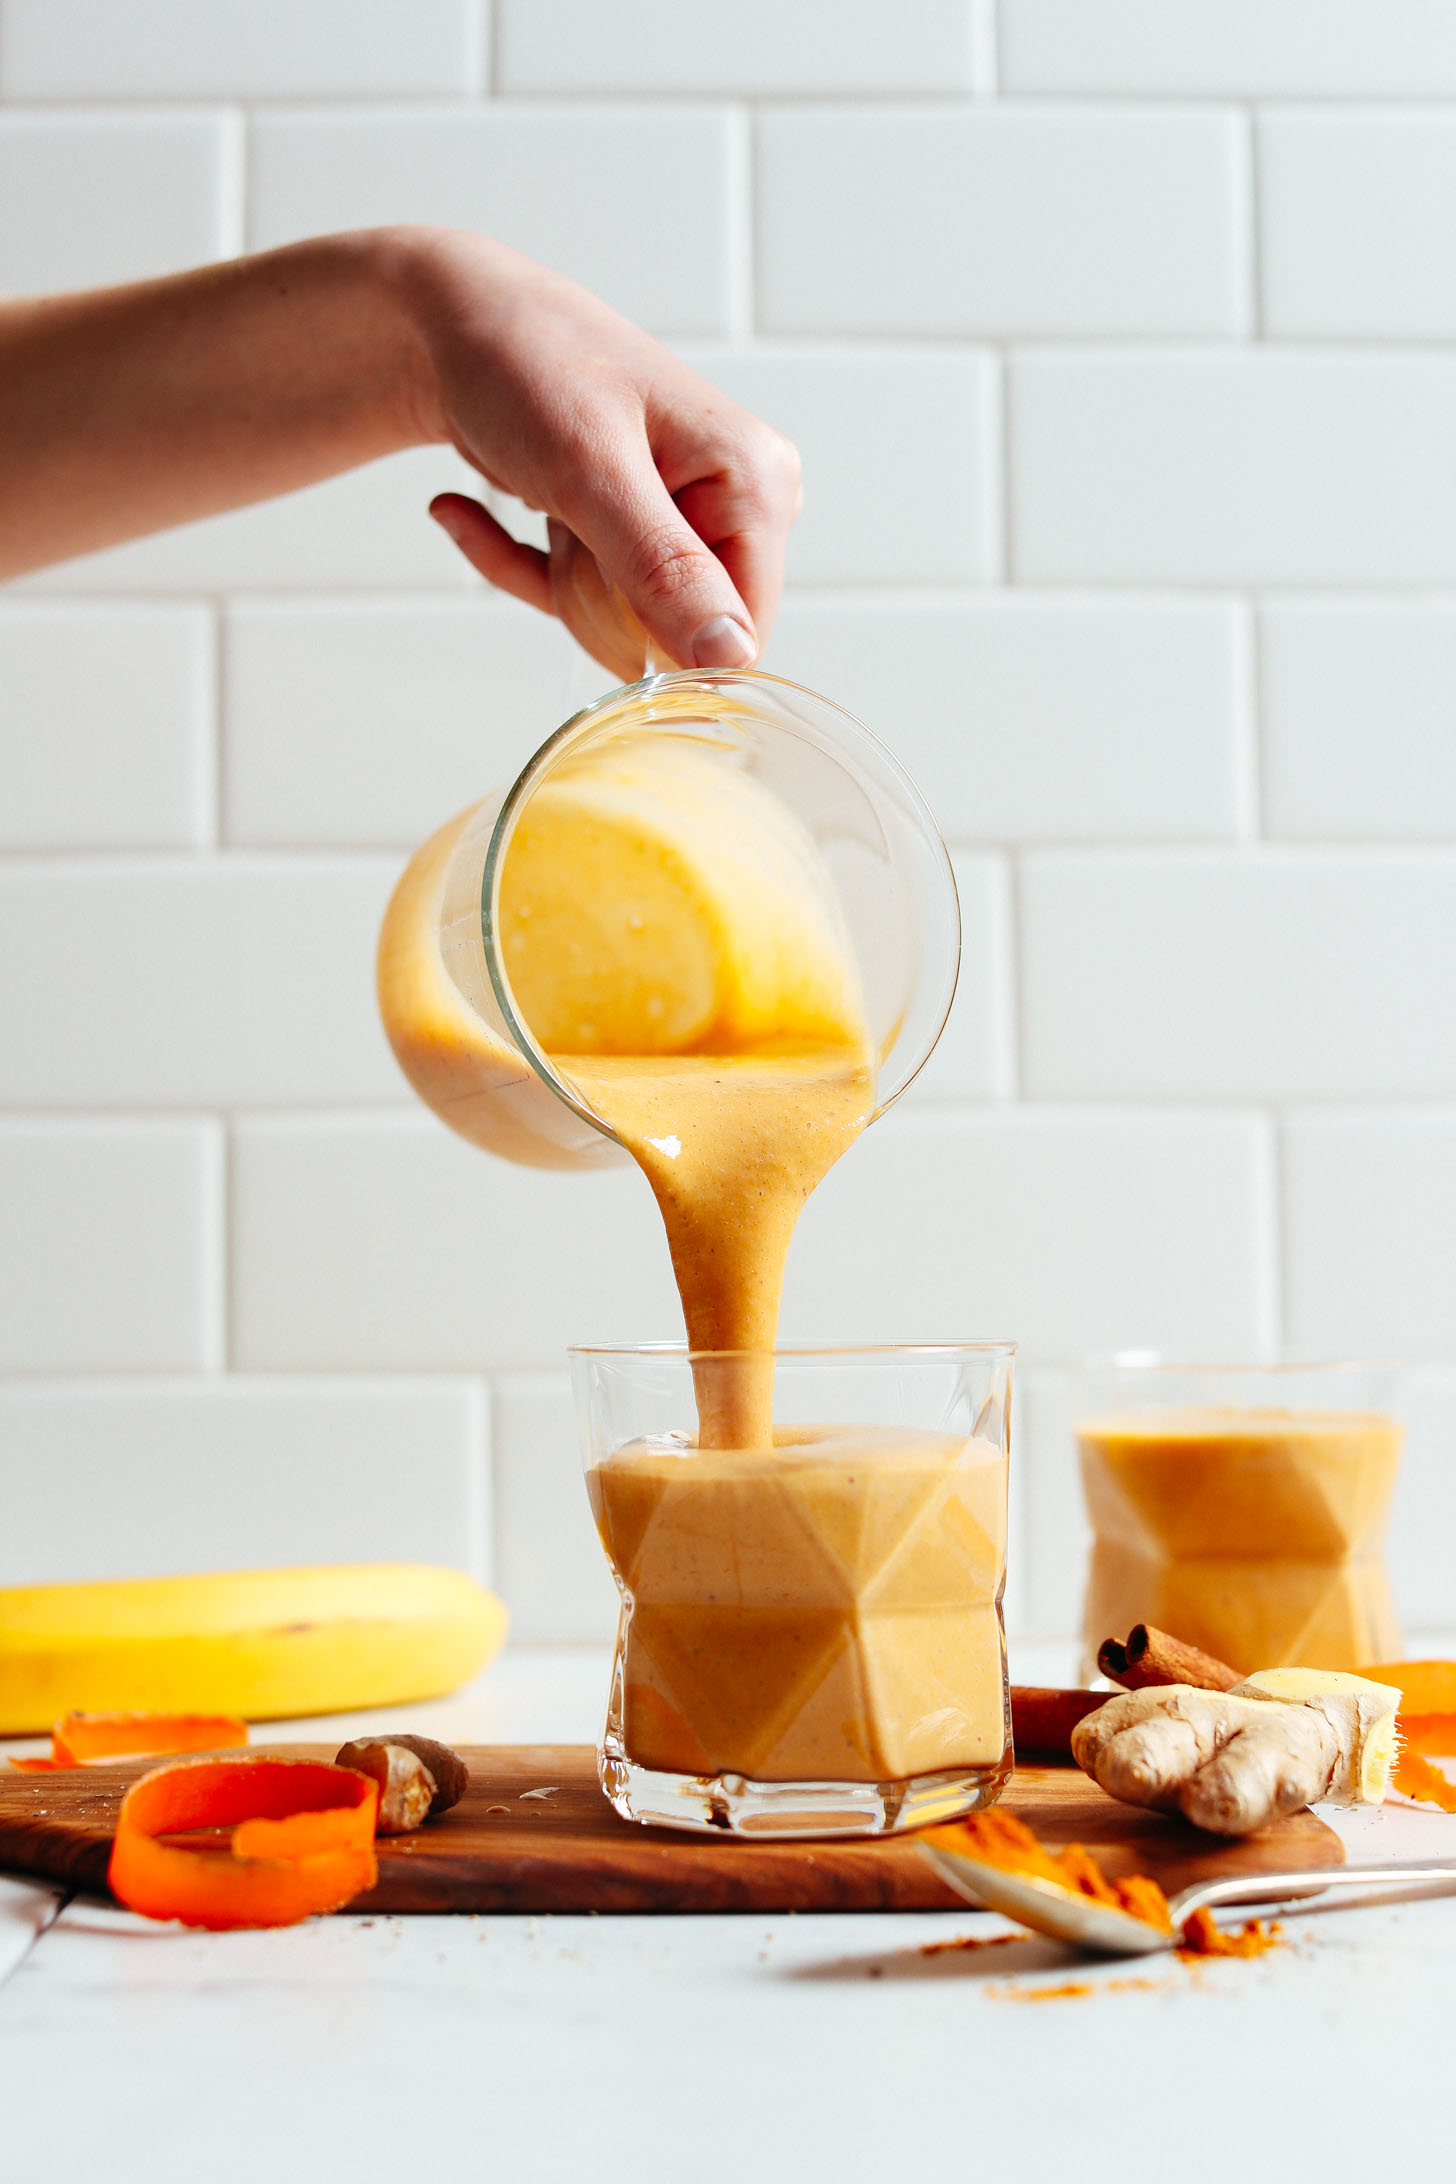 Pouring our vibrantly-colored Vegan Golden Milk Smoothie into a serving glass